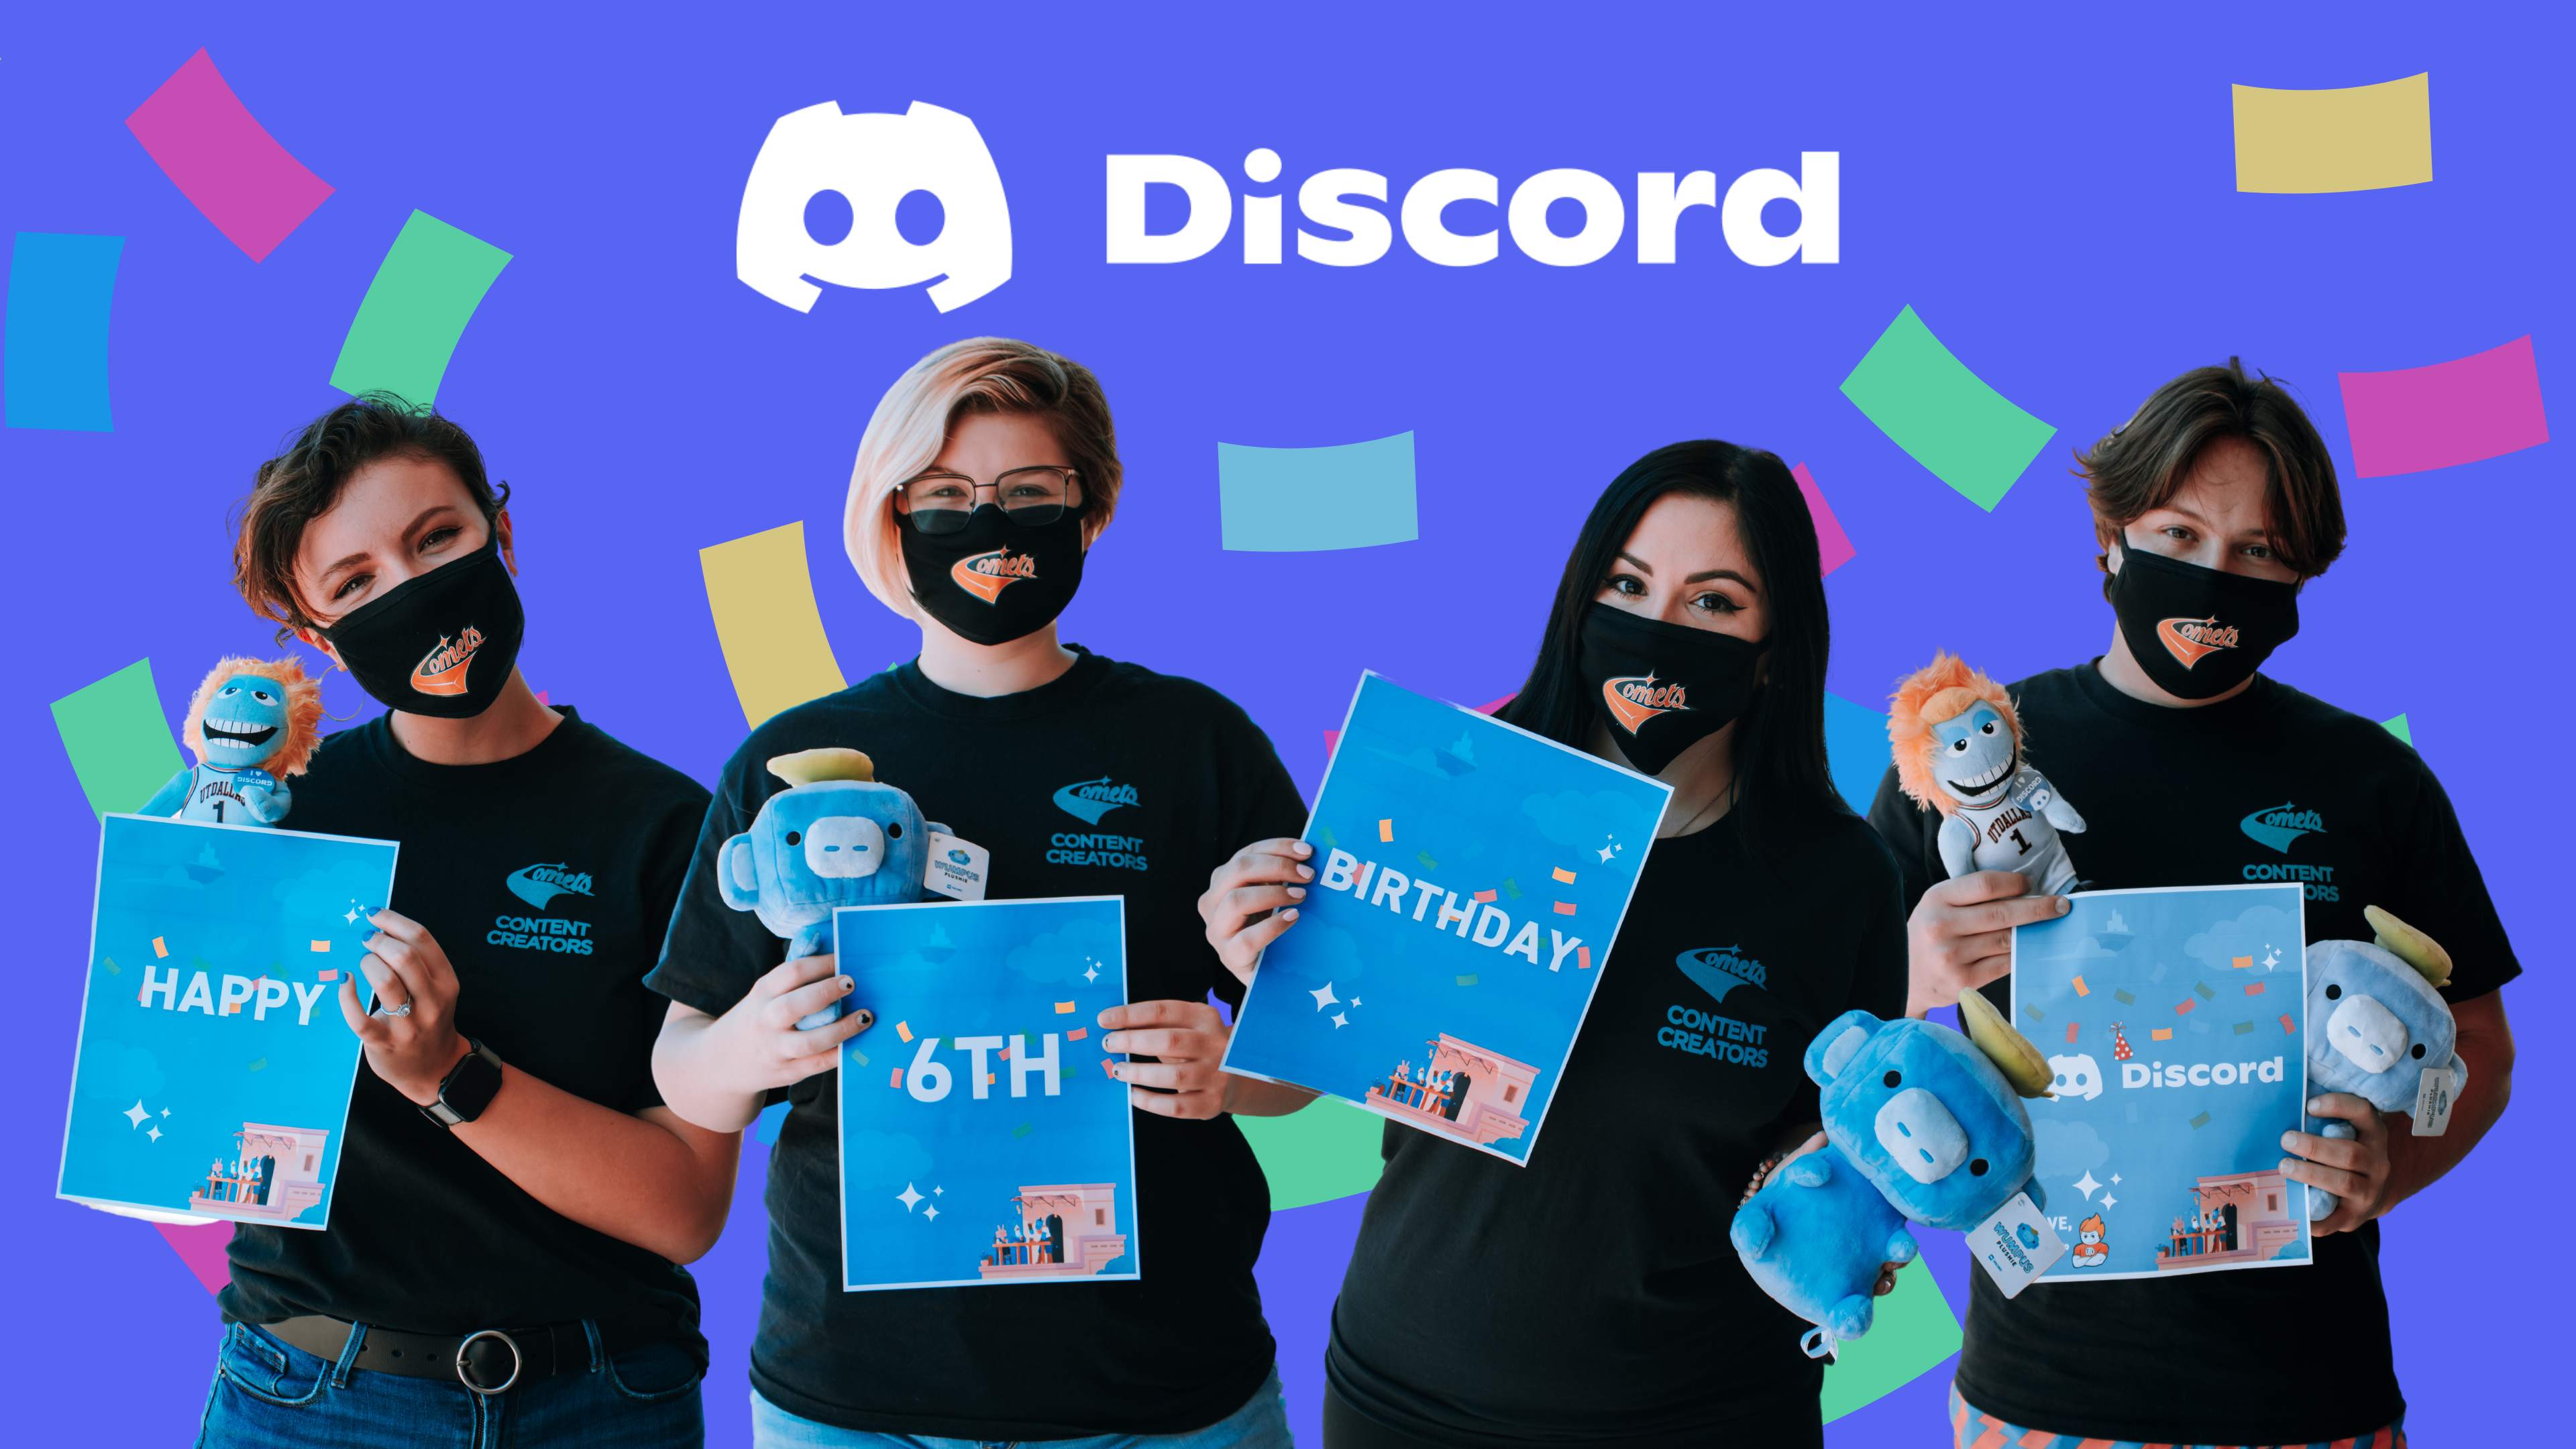 Celebrating Discord's 6th Birthday In Style (And With Cake)